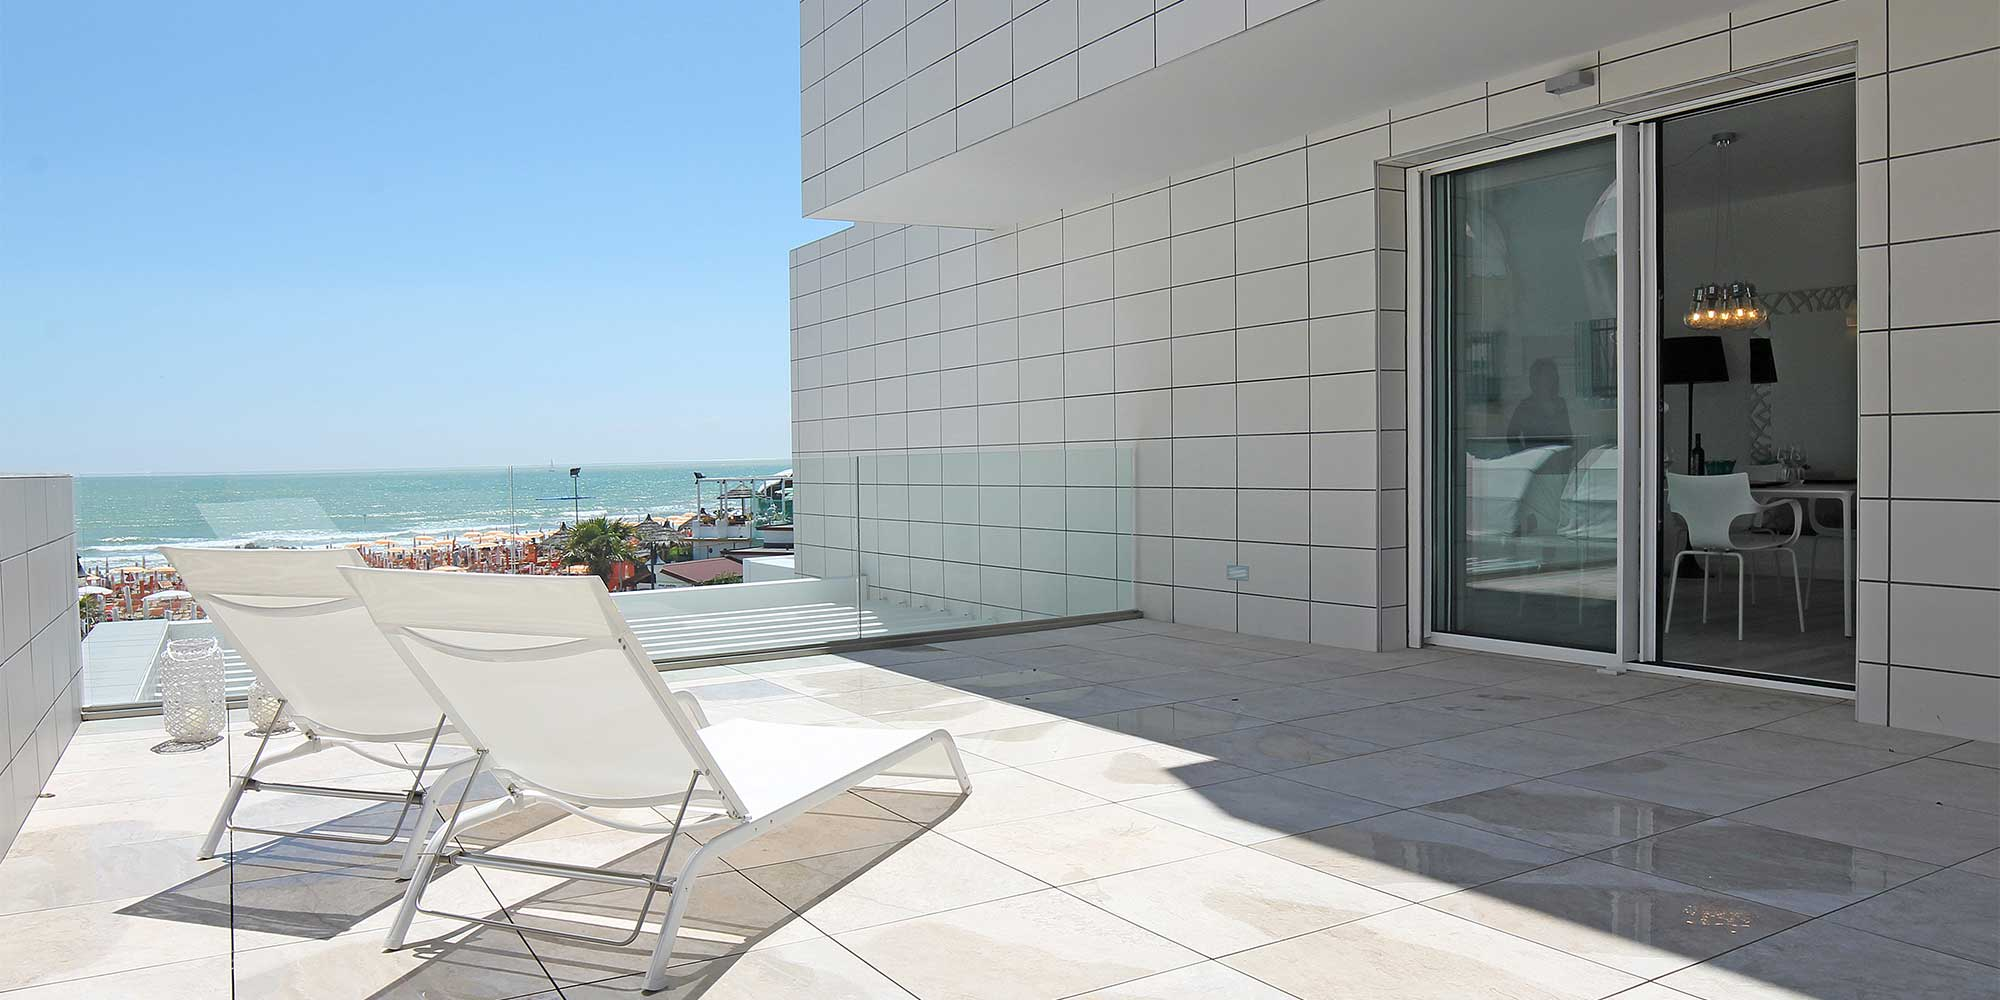 House Beach, Caorle Venezia